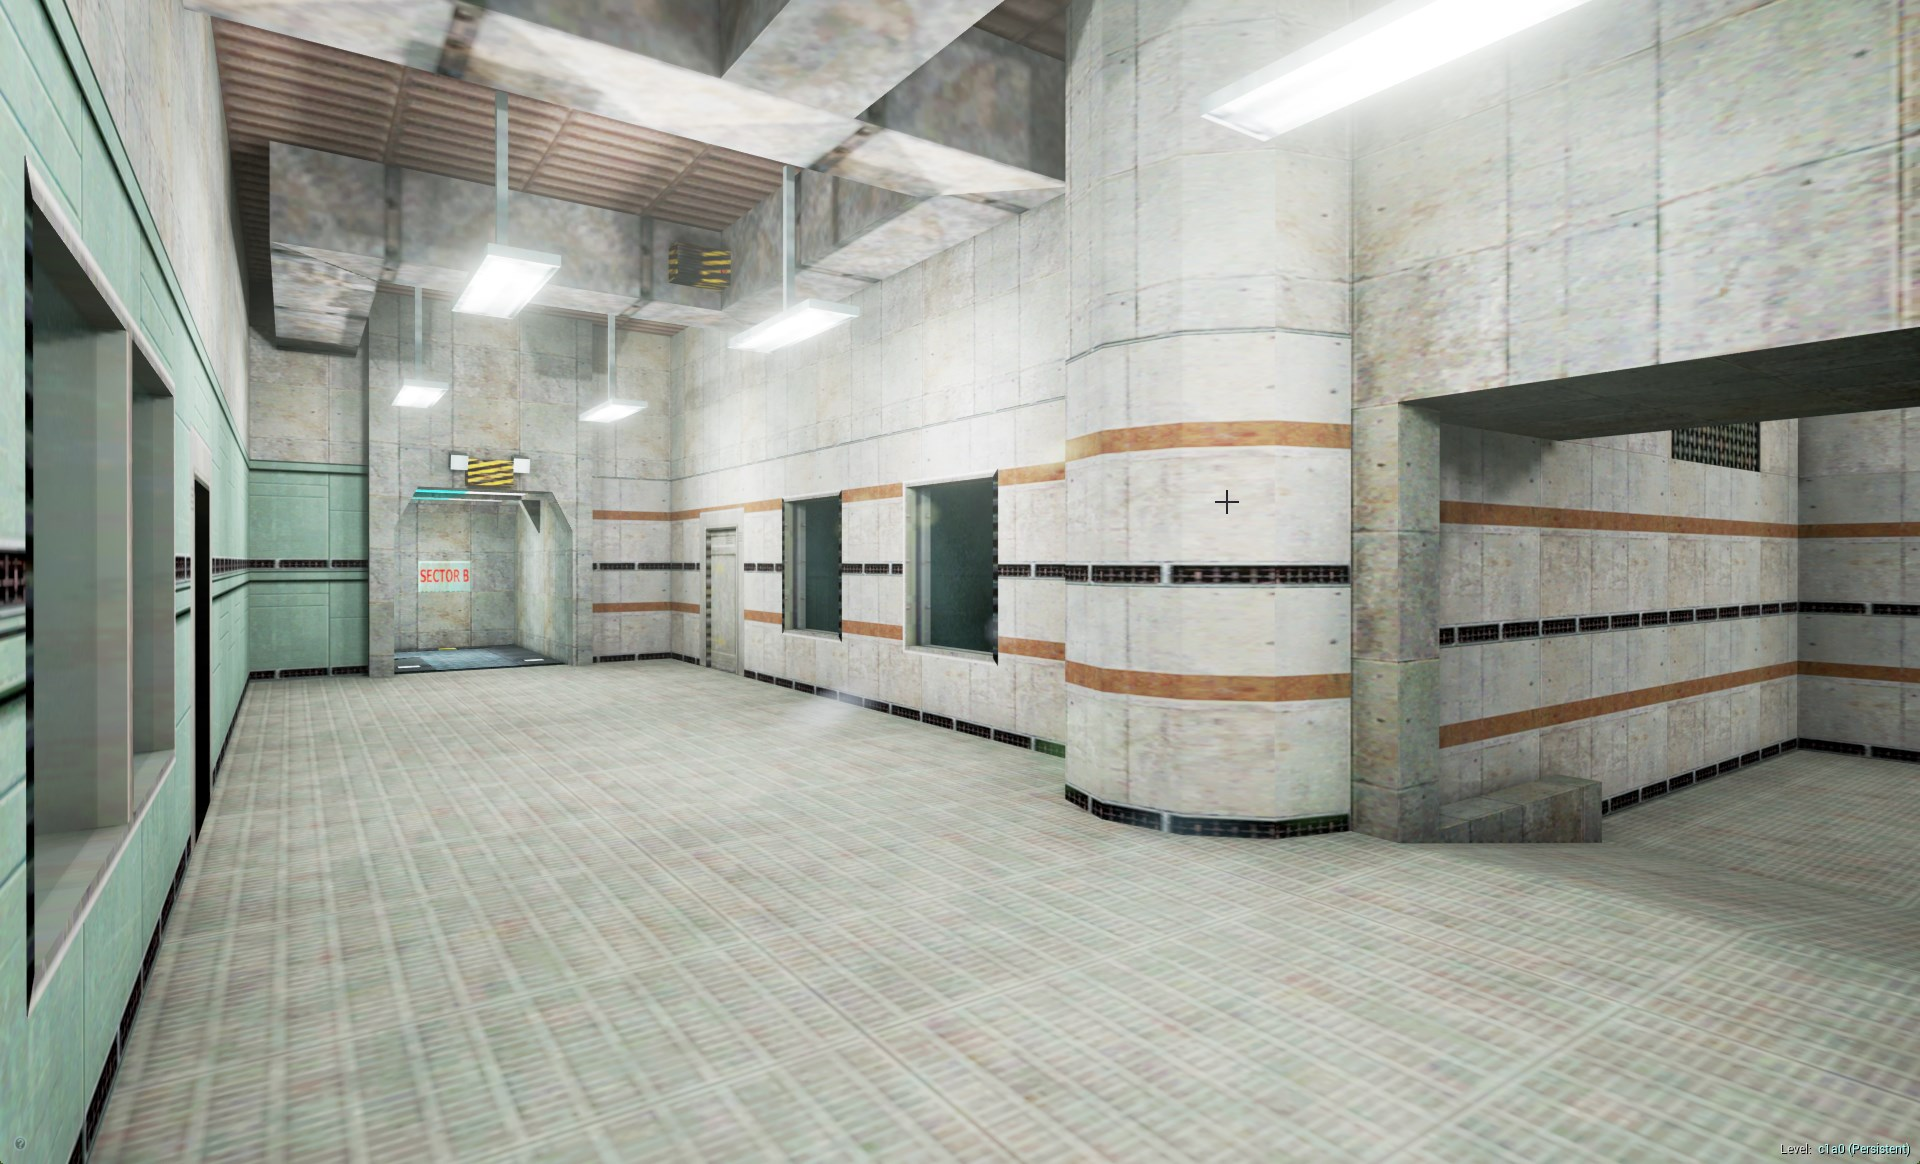 What Happens When Half-Life Meets Unreal Engine – LambdaGeneration